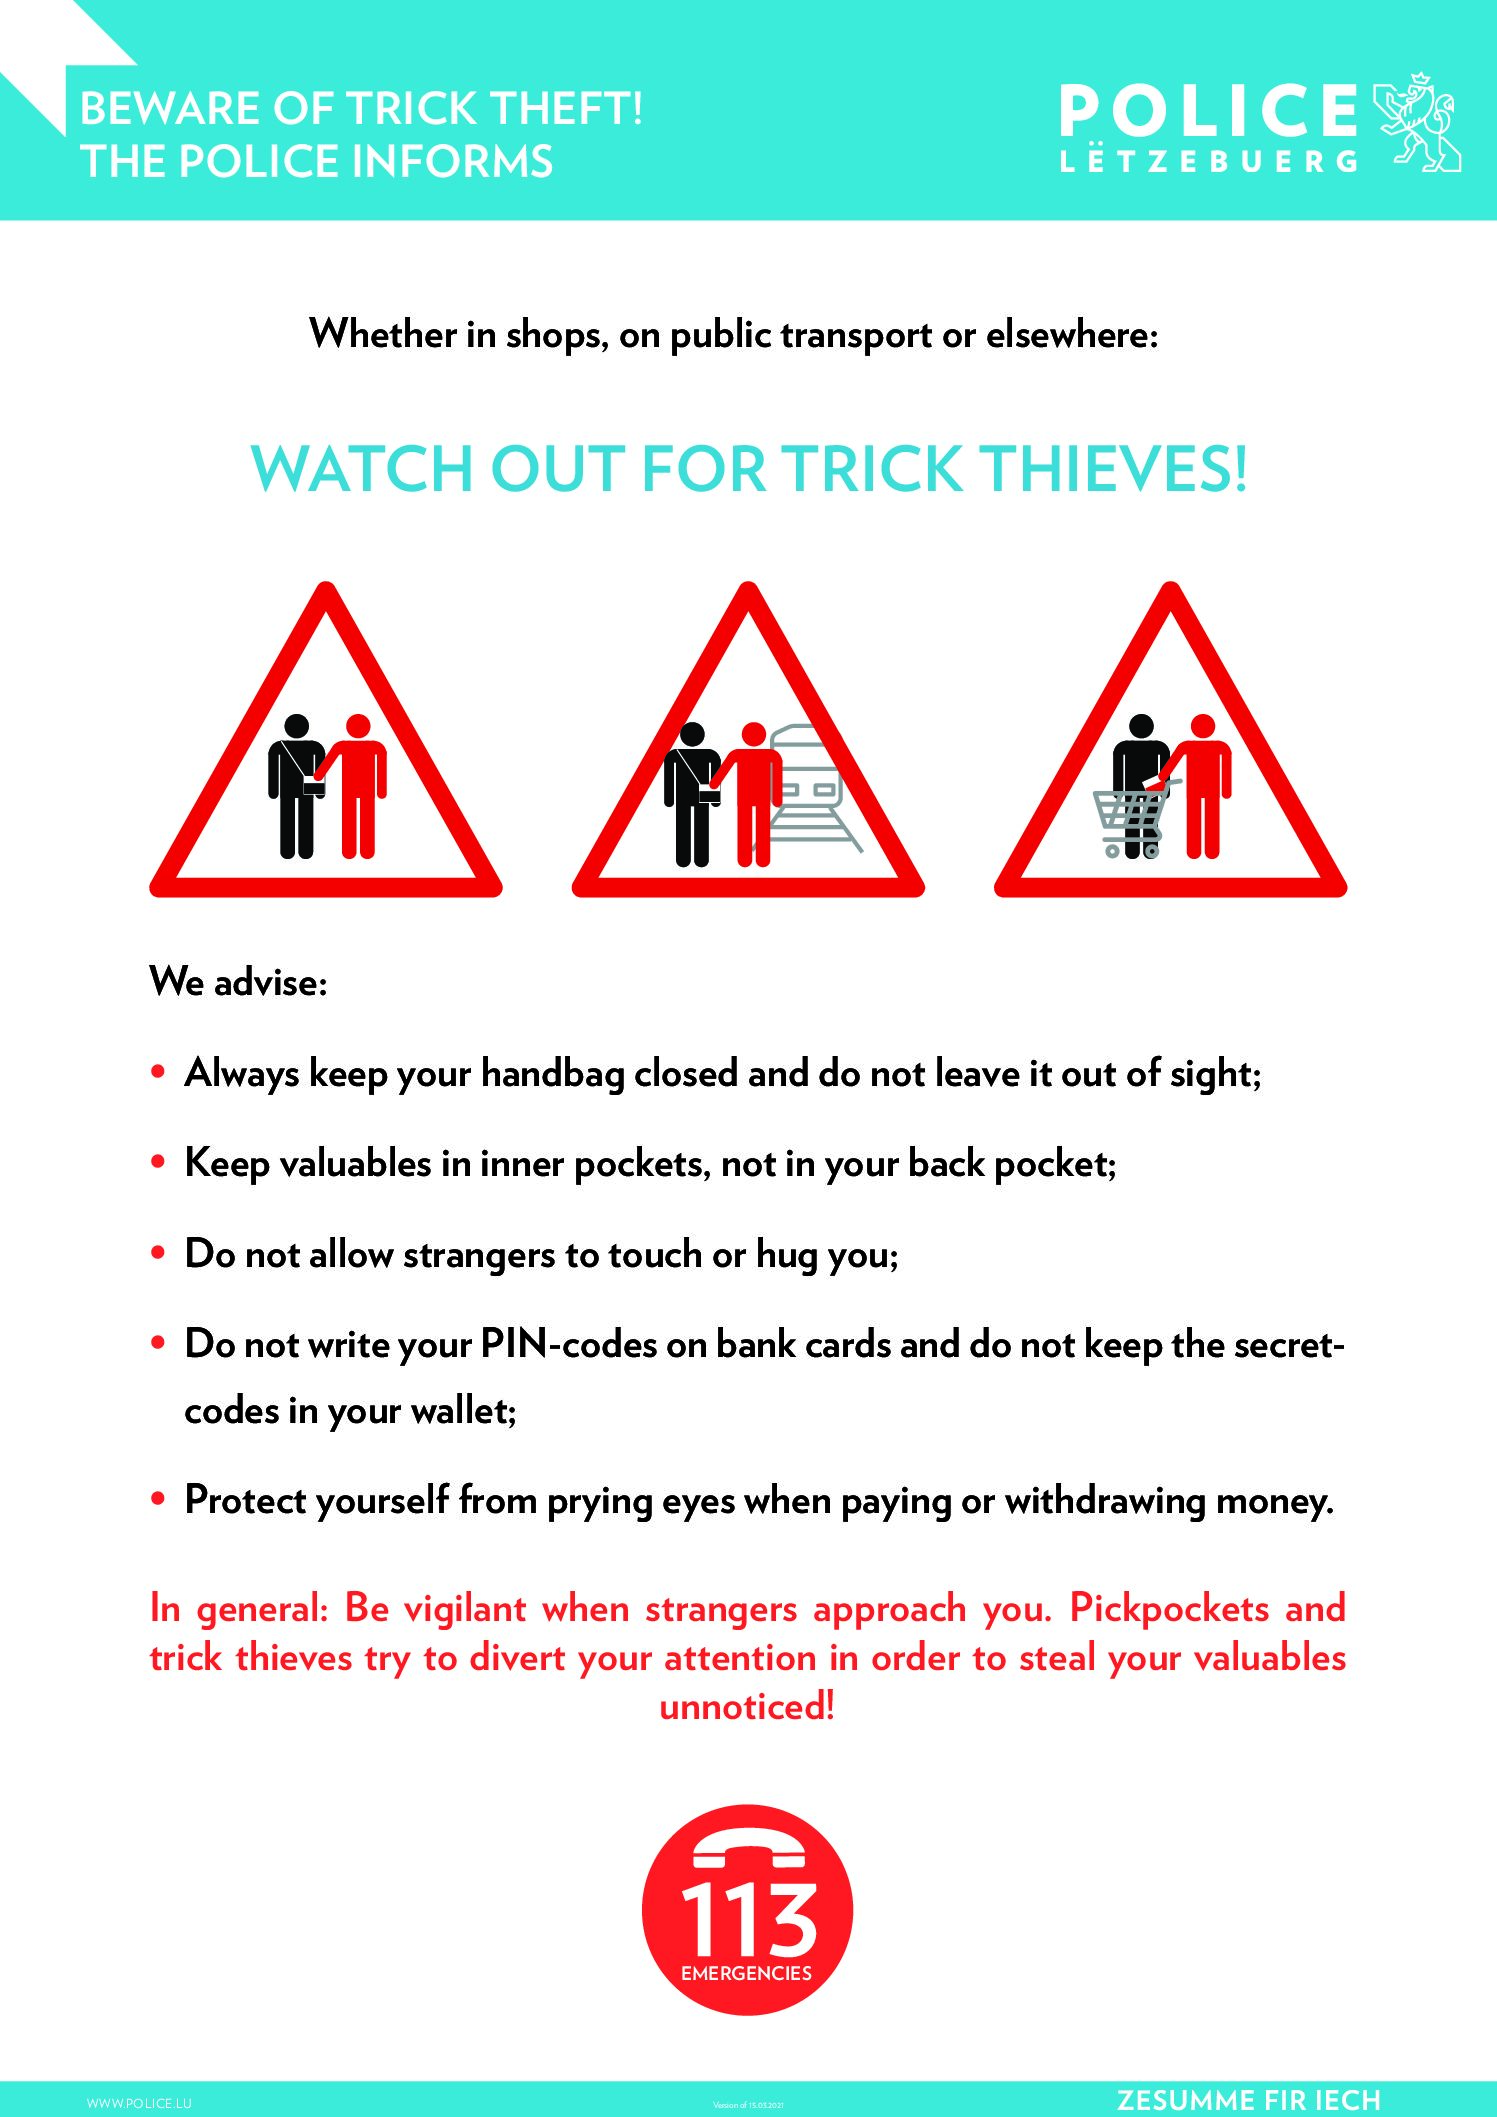 WATCH OUT FOR TRICK THIEVES!